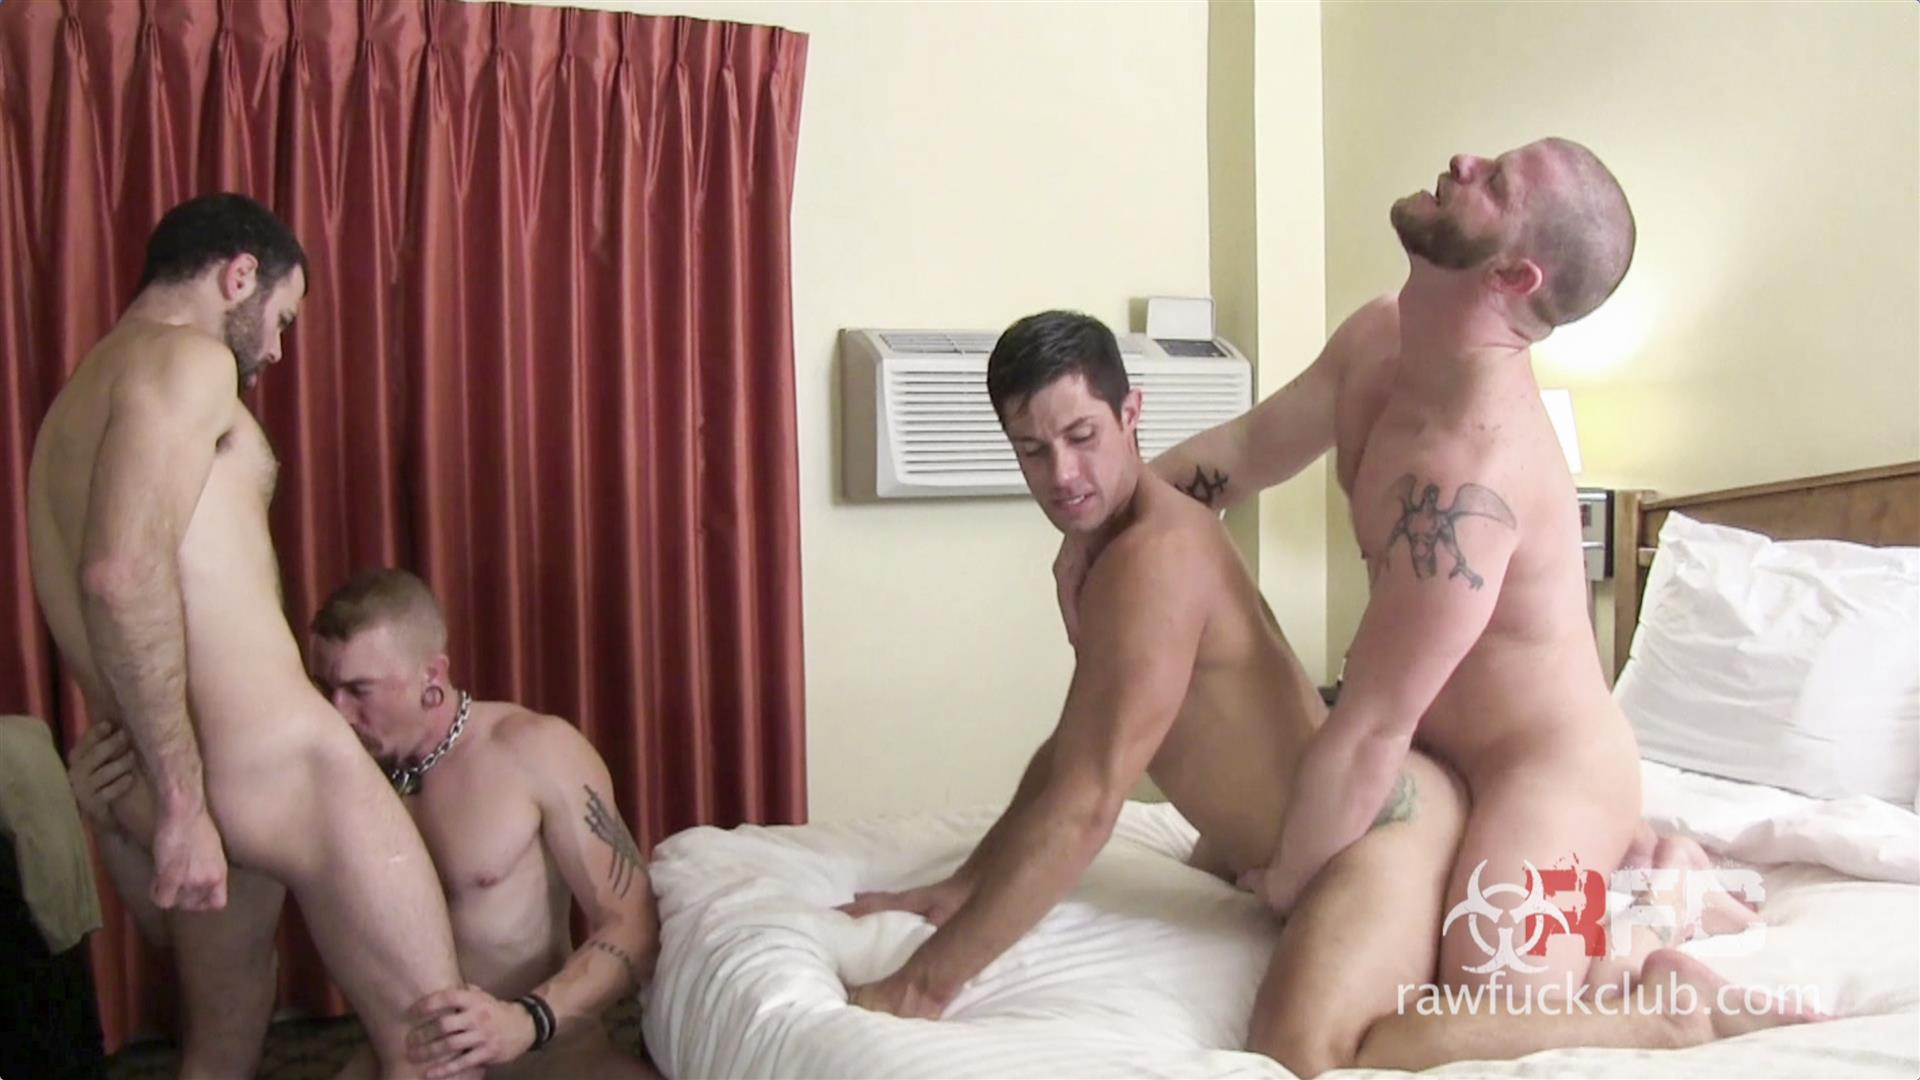 Raw Fuck Club Dylan Saunders and Dusty Williams and Jeff Kendall and Jeremy Stevens BBBH Amateur Gay Porn 02 Big Cock Amateur Hotel Bareback Sex Party